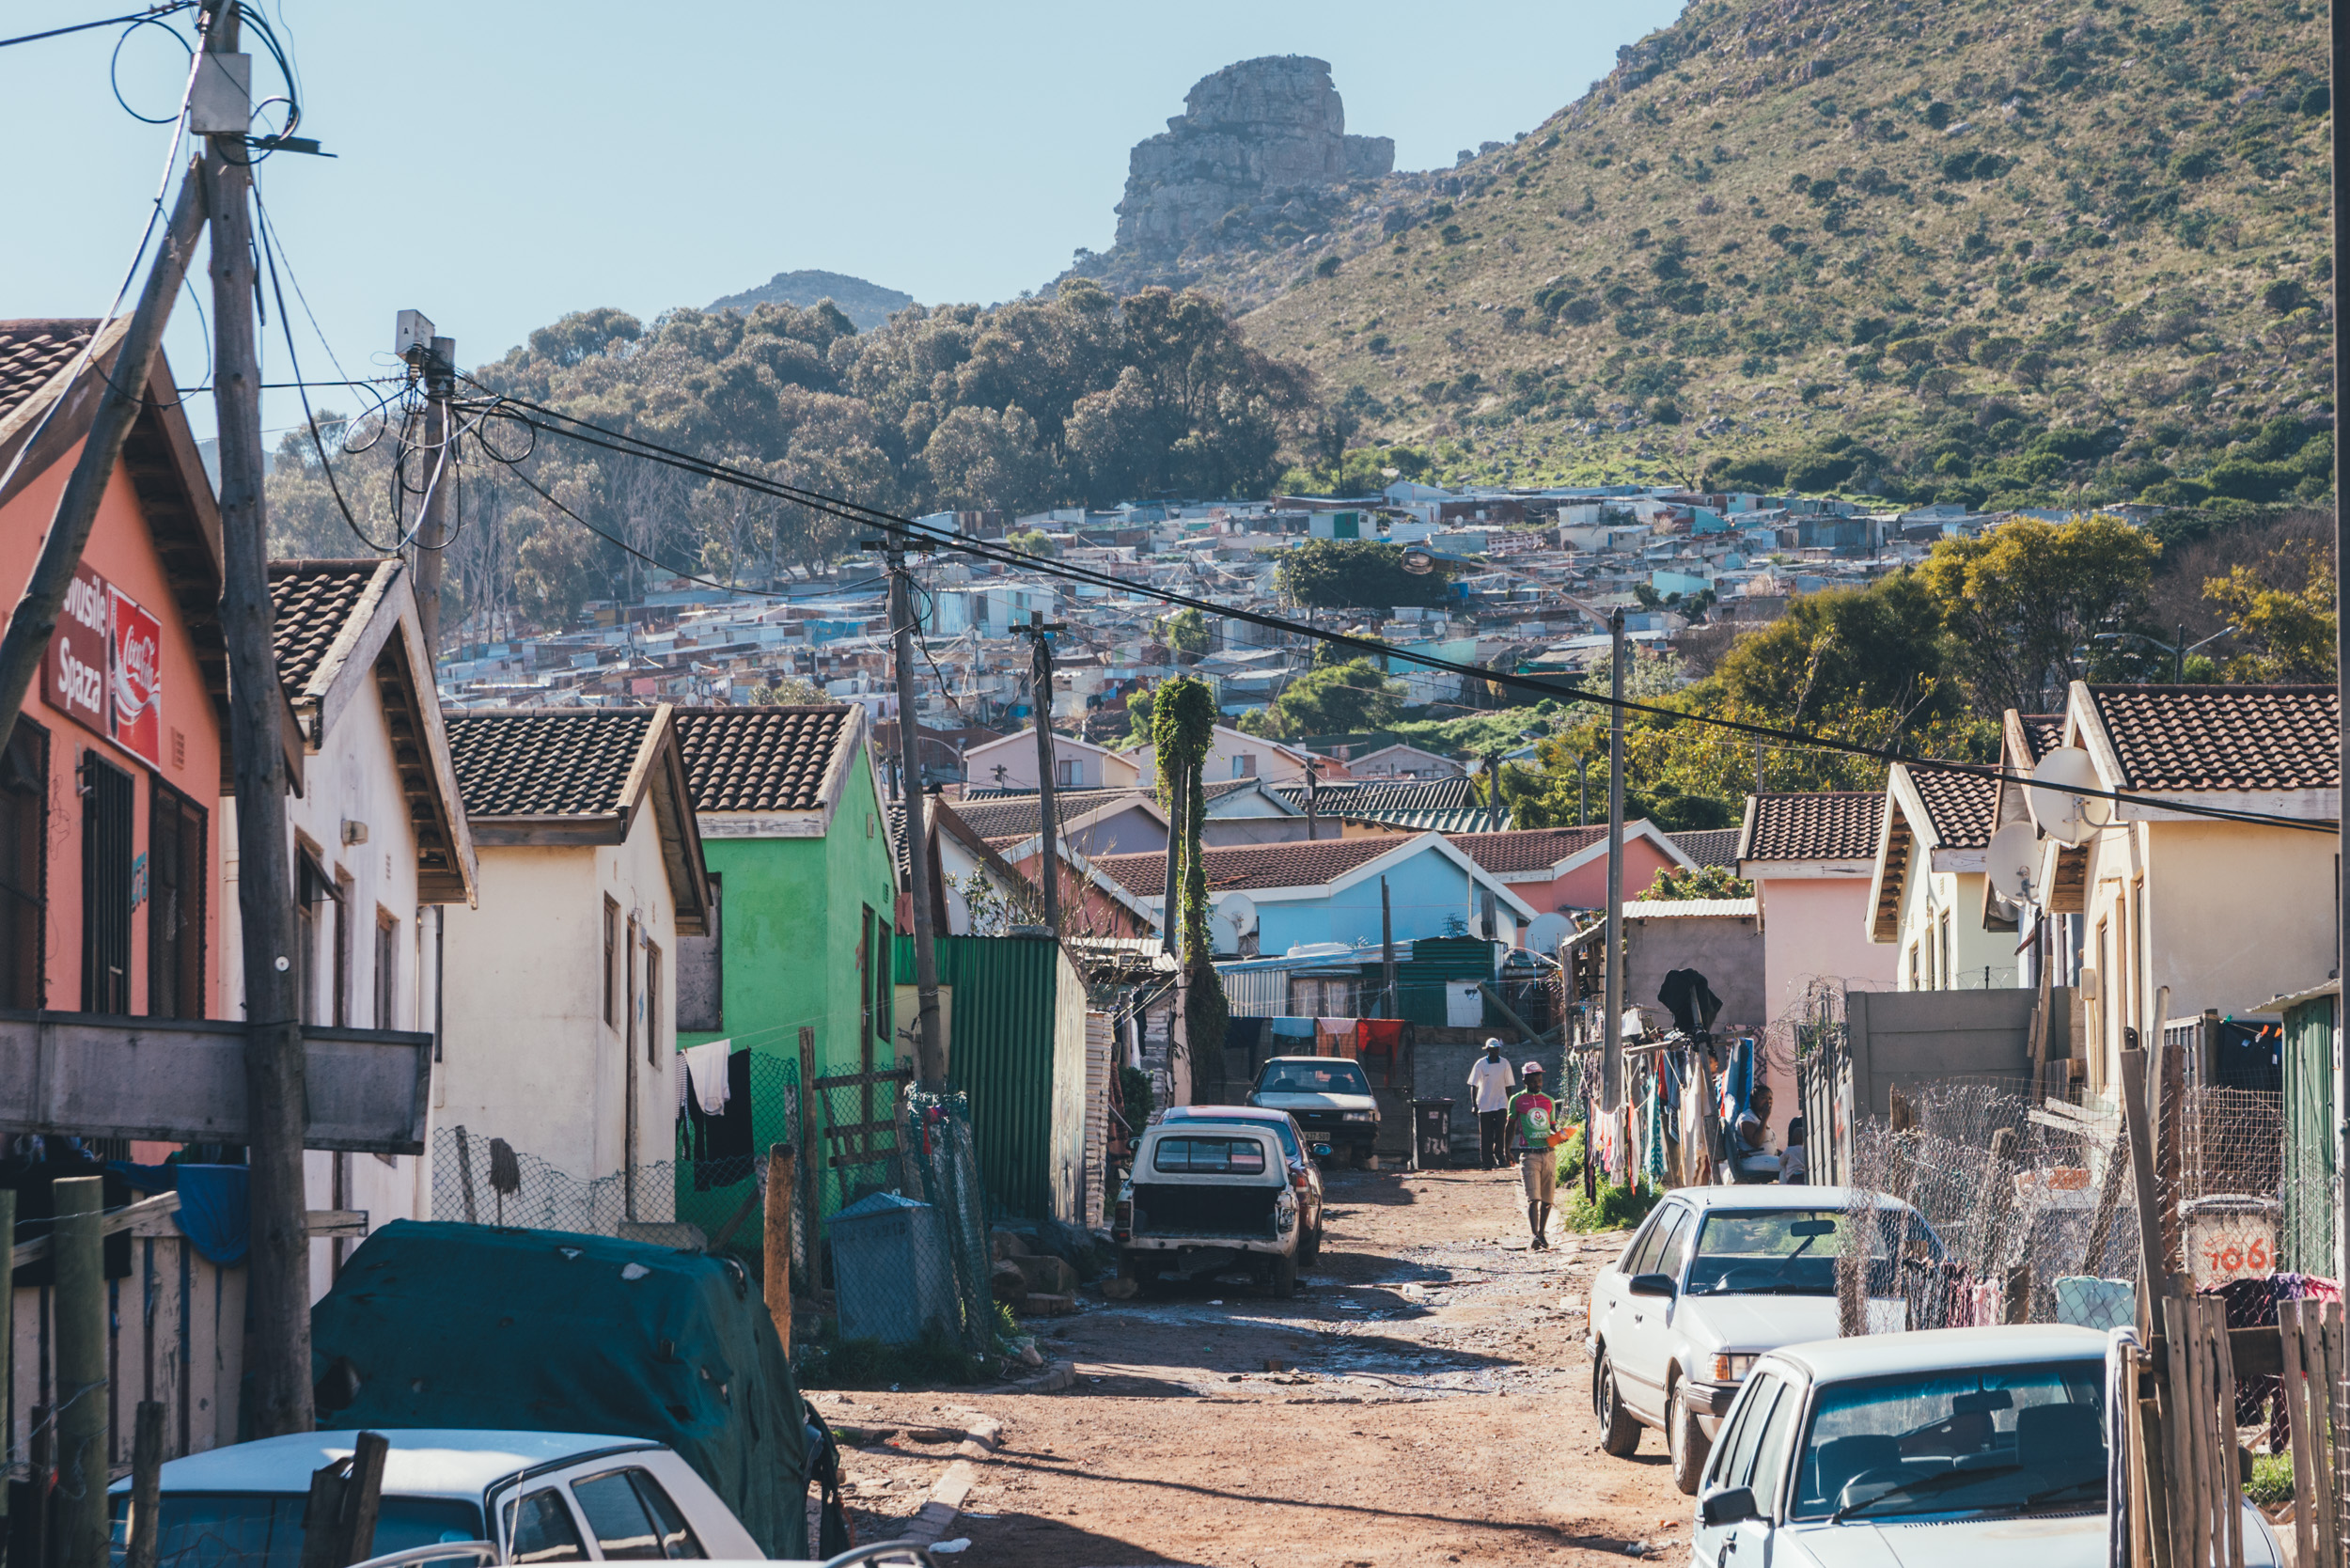 Imizamo Yetho township in The city of Cape Town